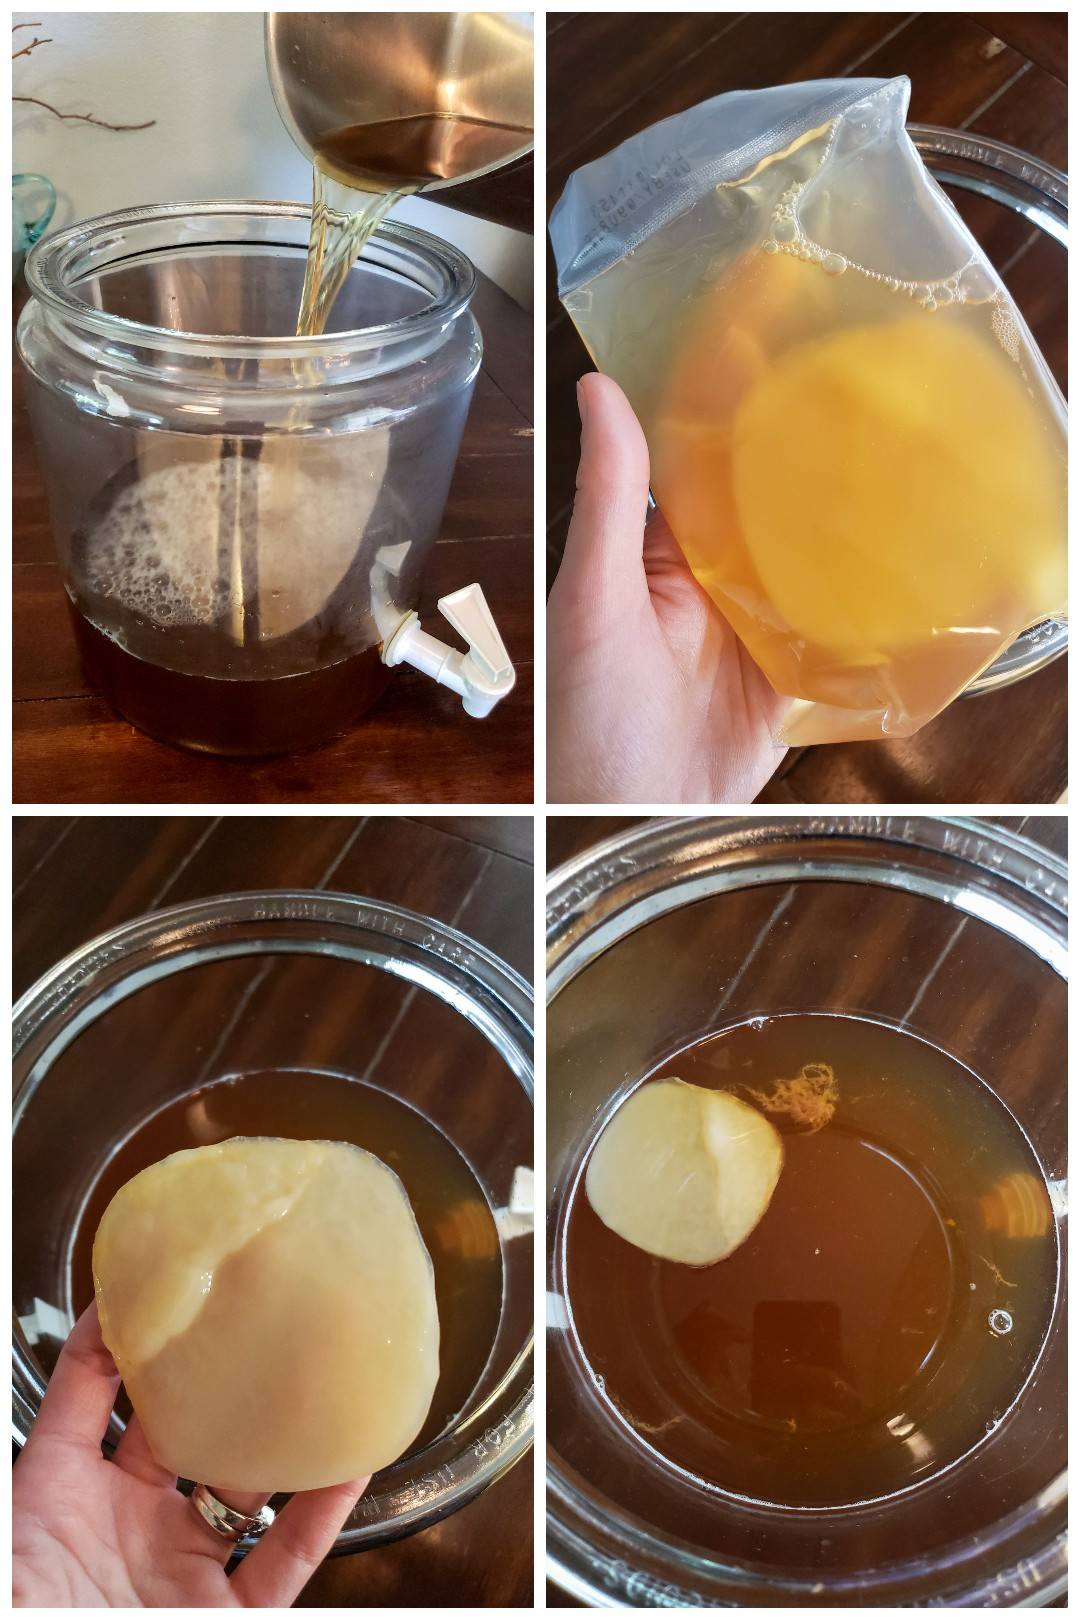 Four images showing the process of setting up a new kombucha brew, including pouring tea into a glass vessel, pouring in starer liquid, and adding a small round white SCOBY. It is flat, but about as big around as a softball.